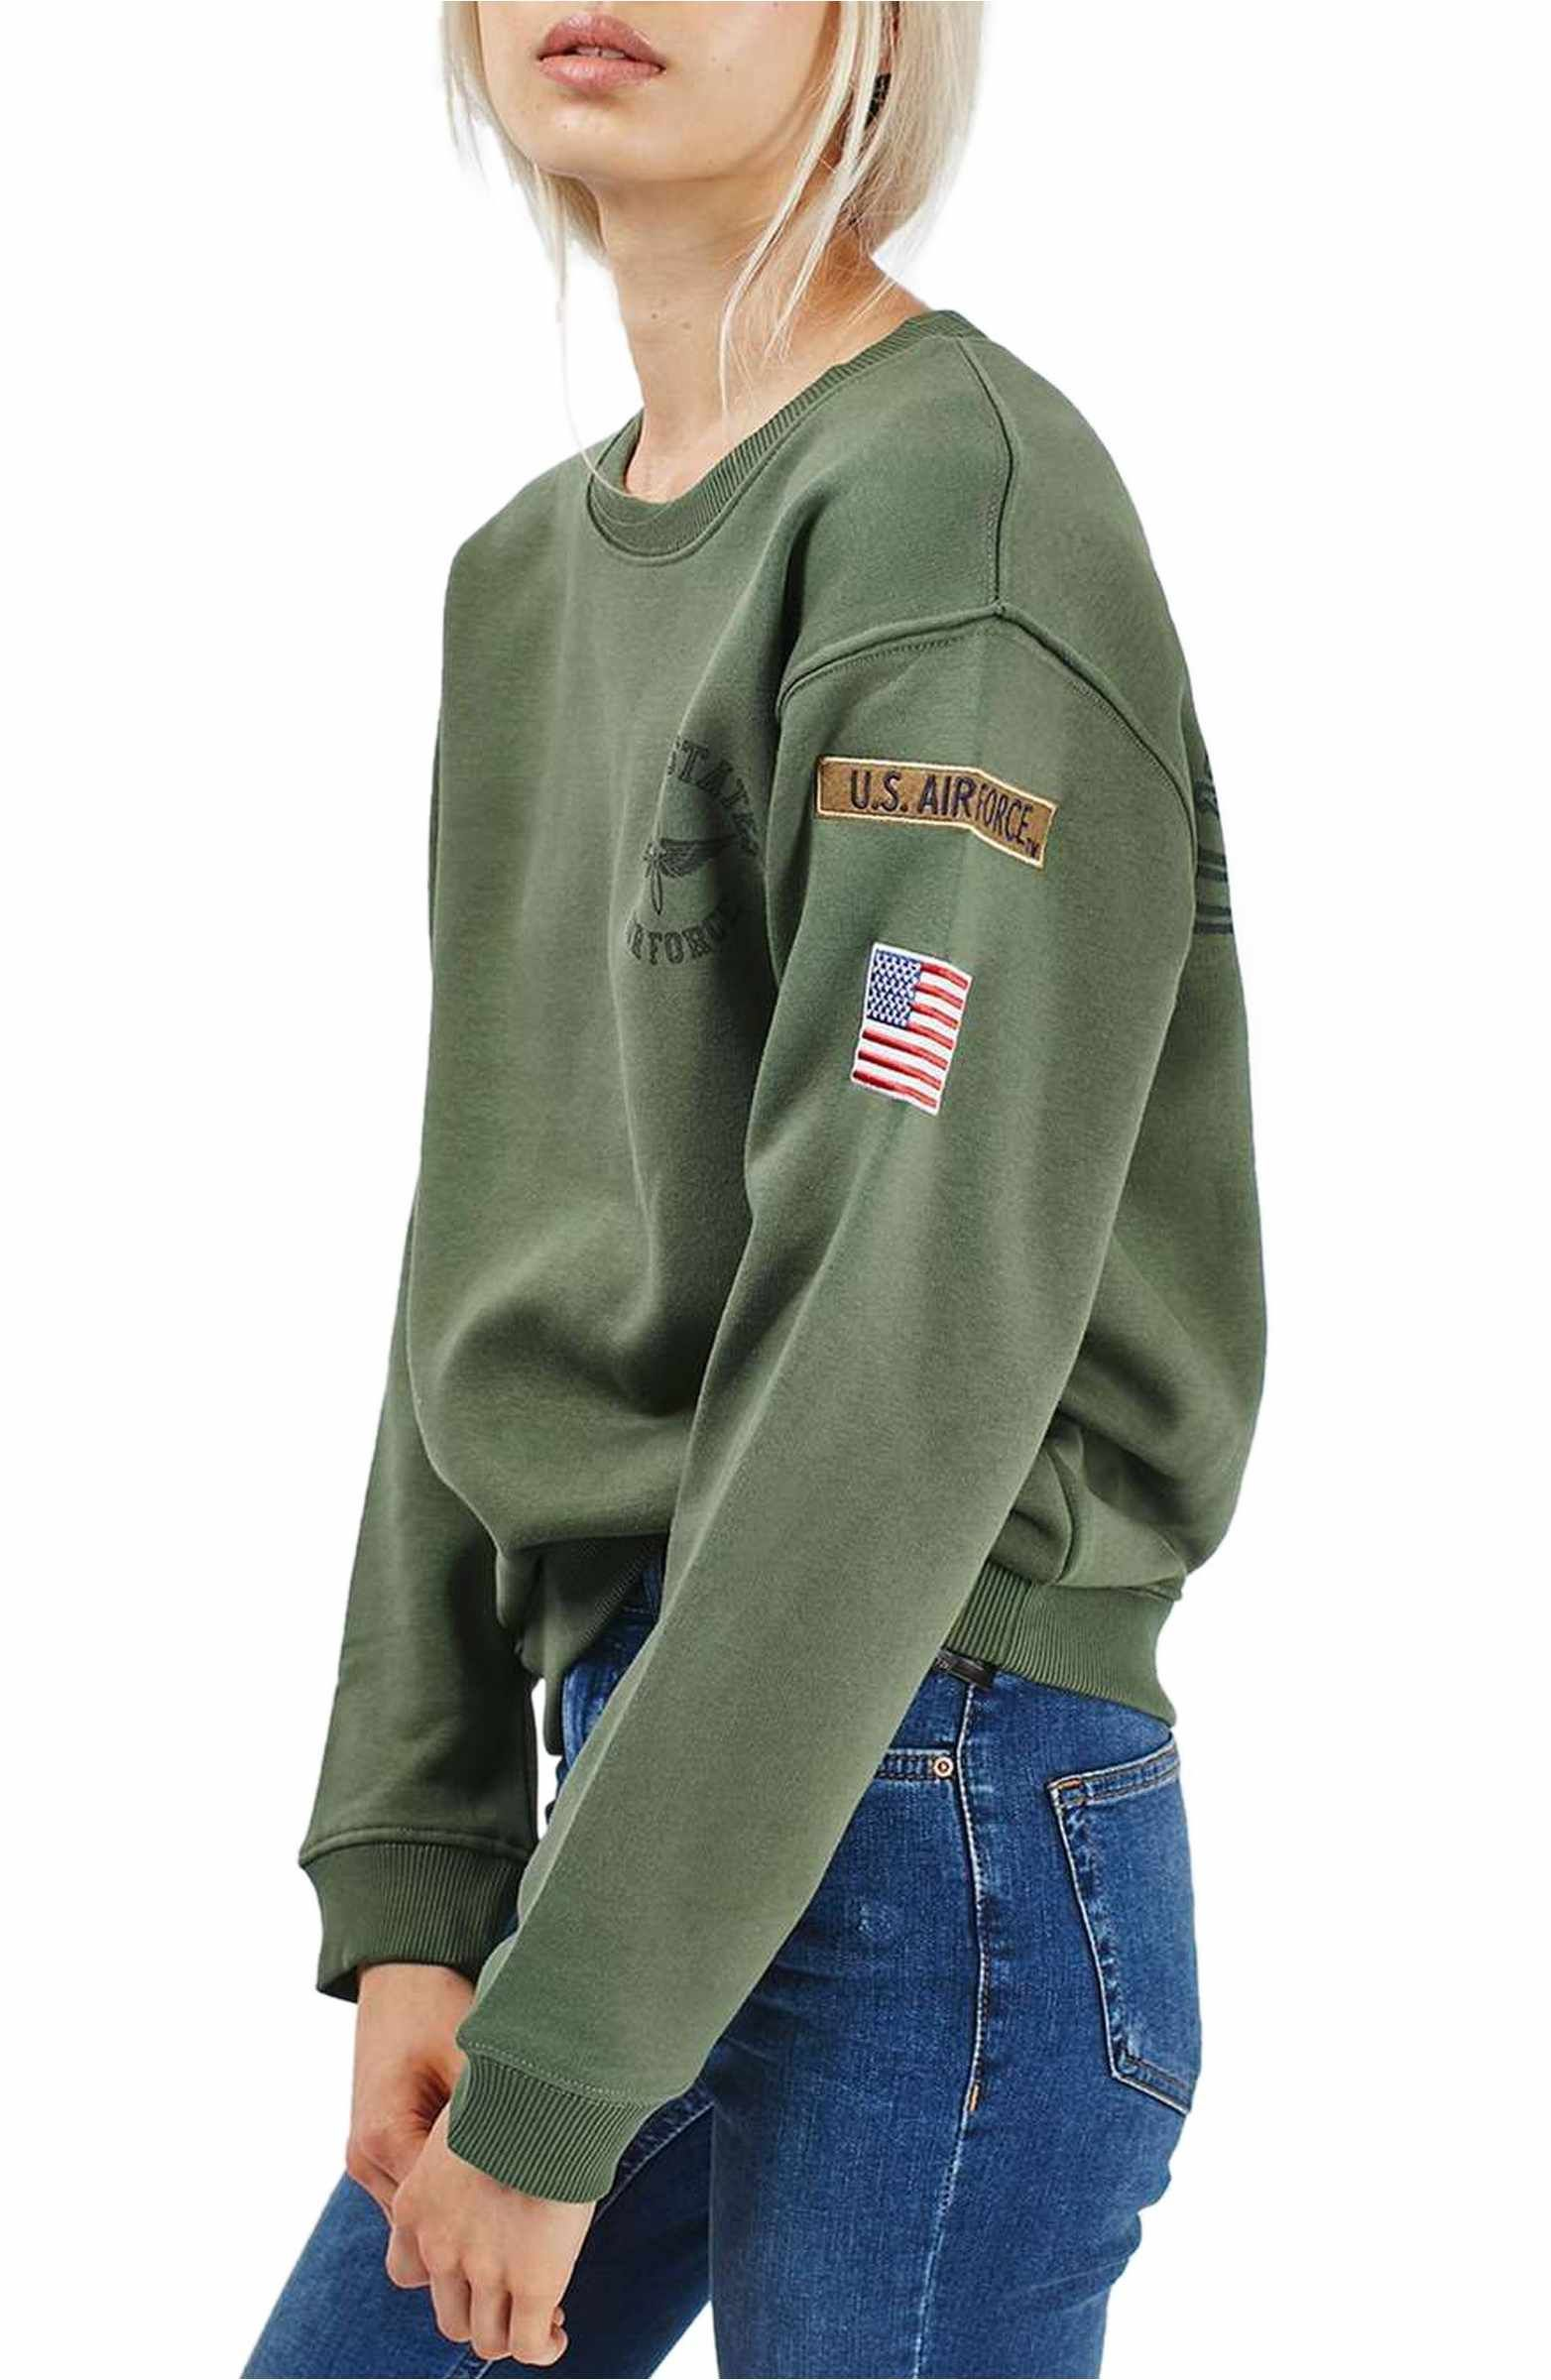 by Tee & Cake Air Force Sweatshirt Army clothes